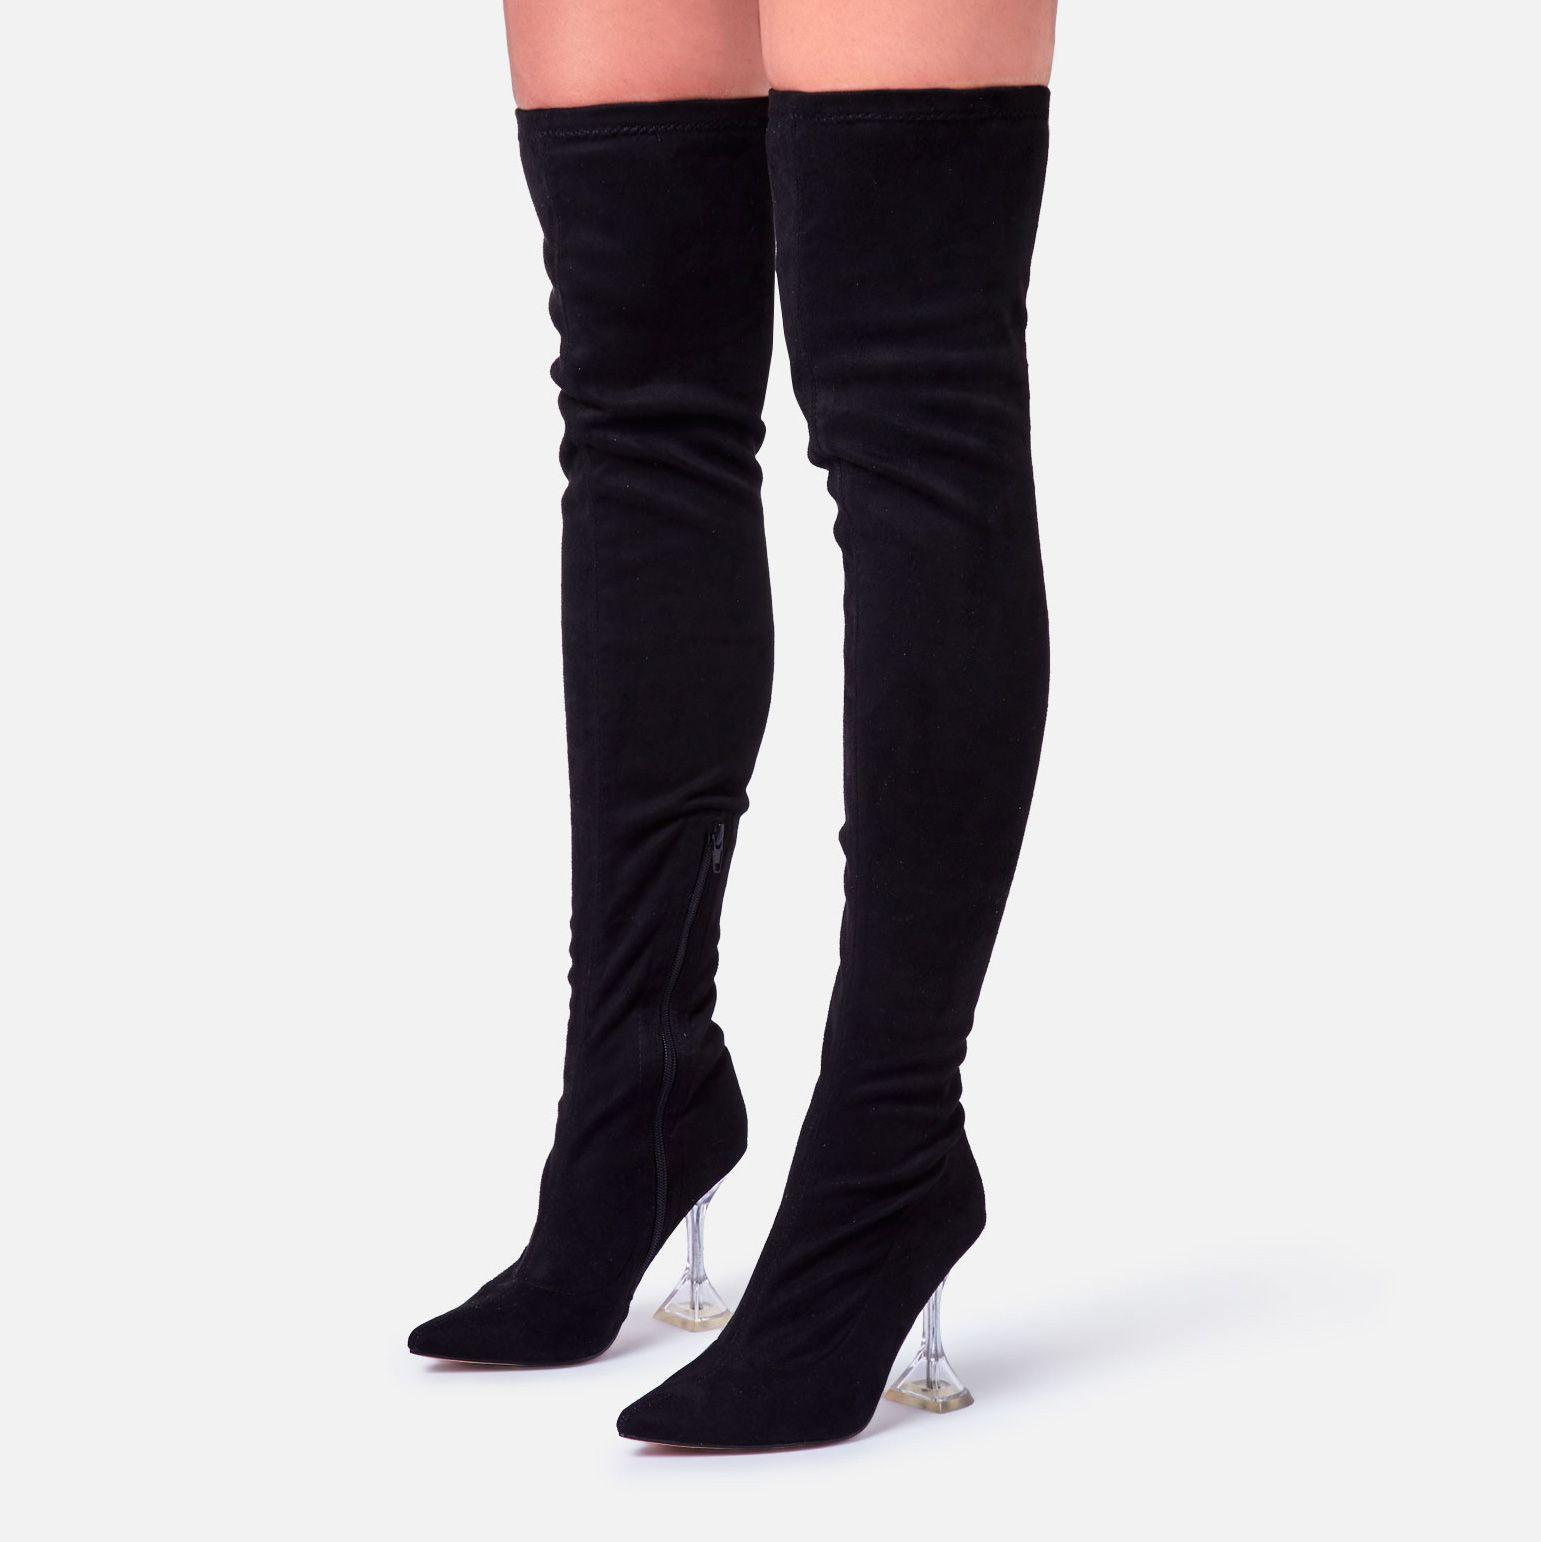 NEW LOOK SIZE 7 40 BLACK FAUX SUEDE OVER KNEE THIGH BOOTS SHOES BRAND NEW